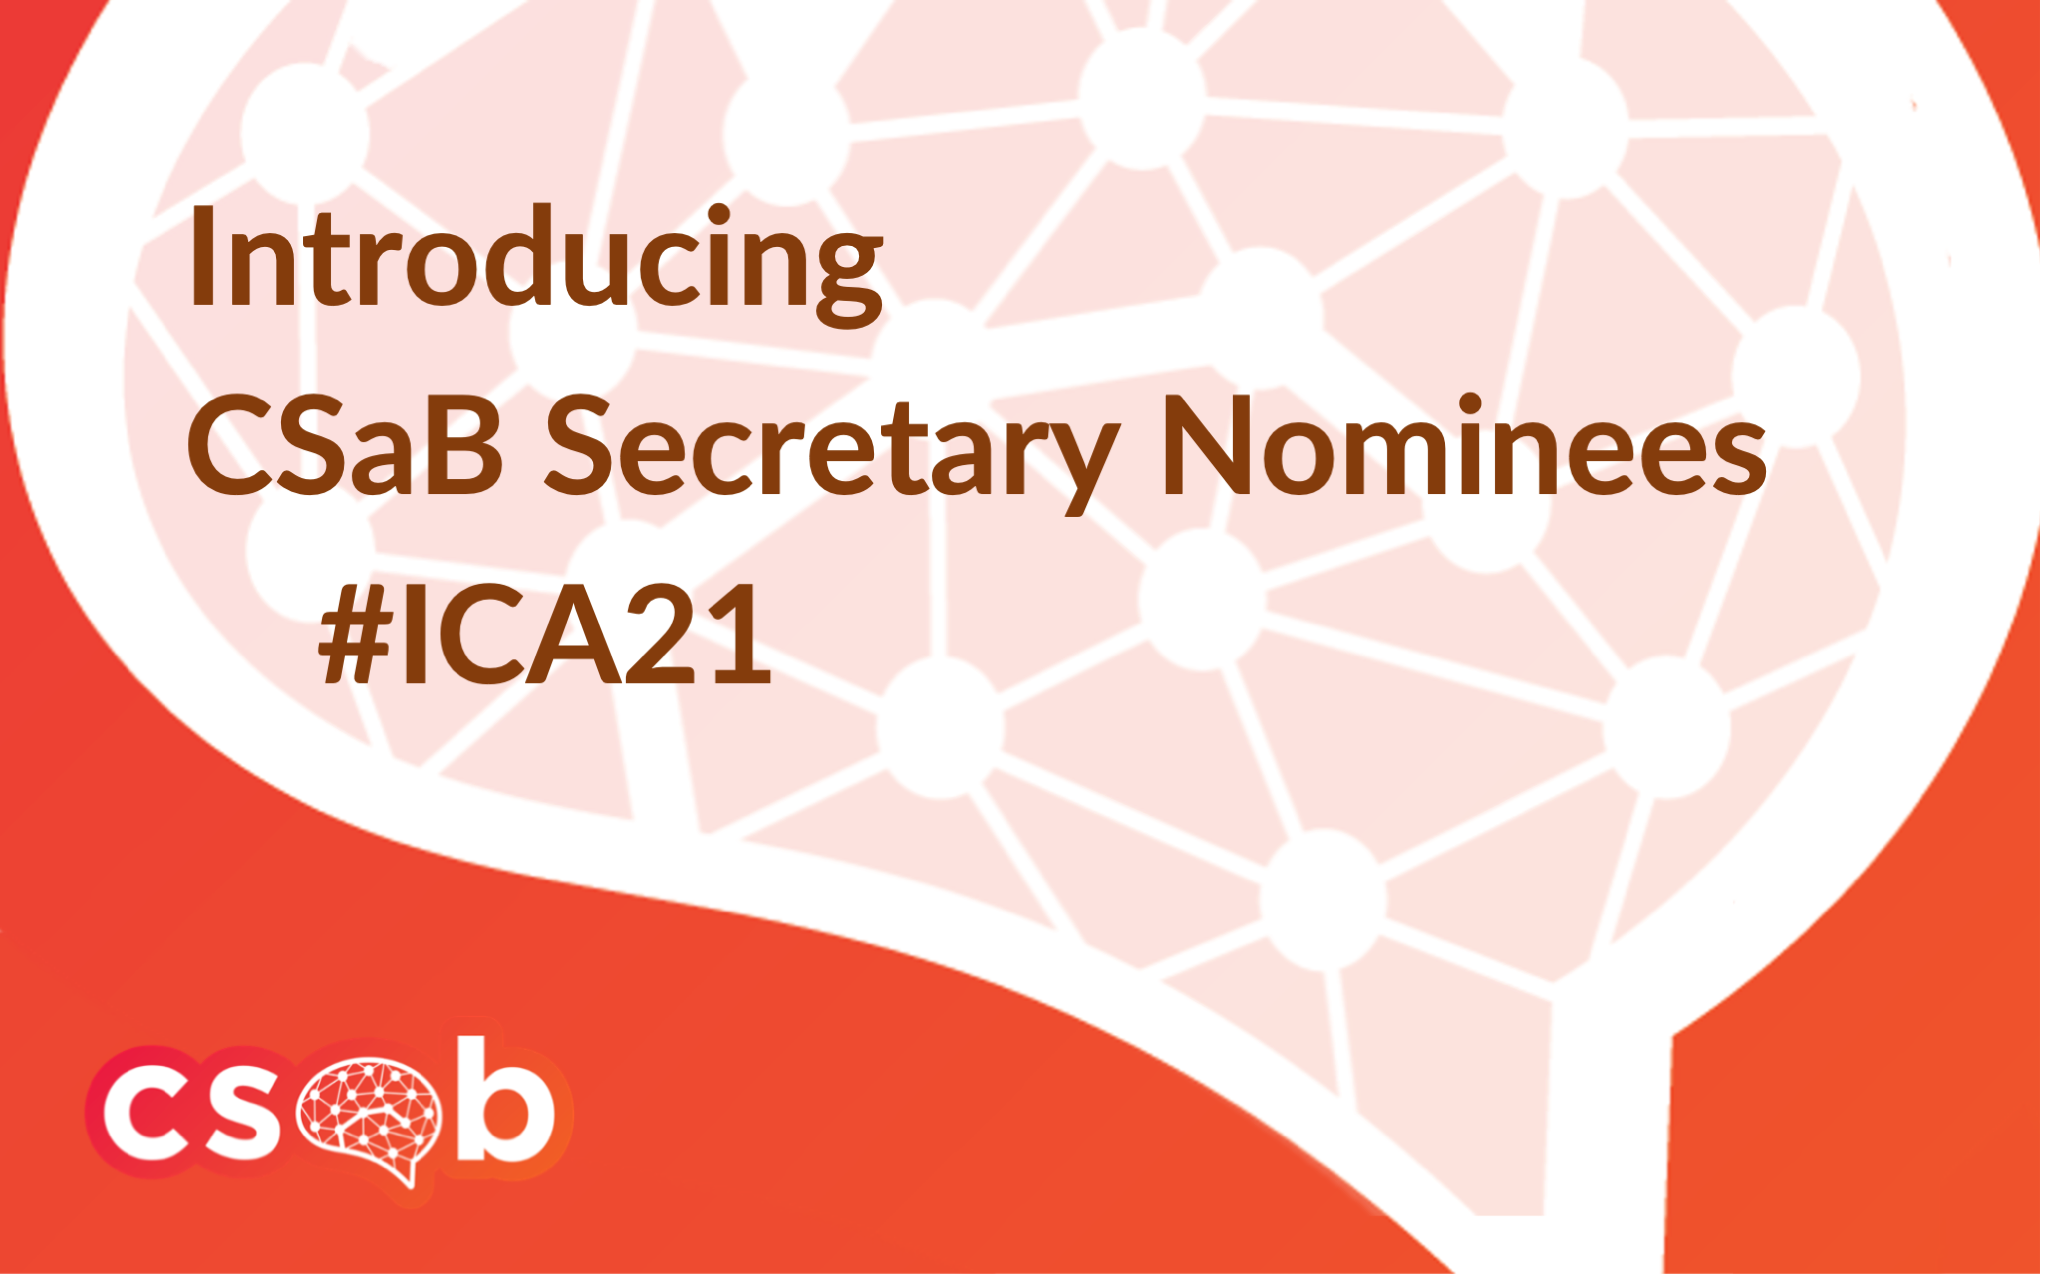 New CSaB Secretary Nominees (Term 2021 – 2023)